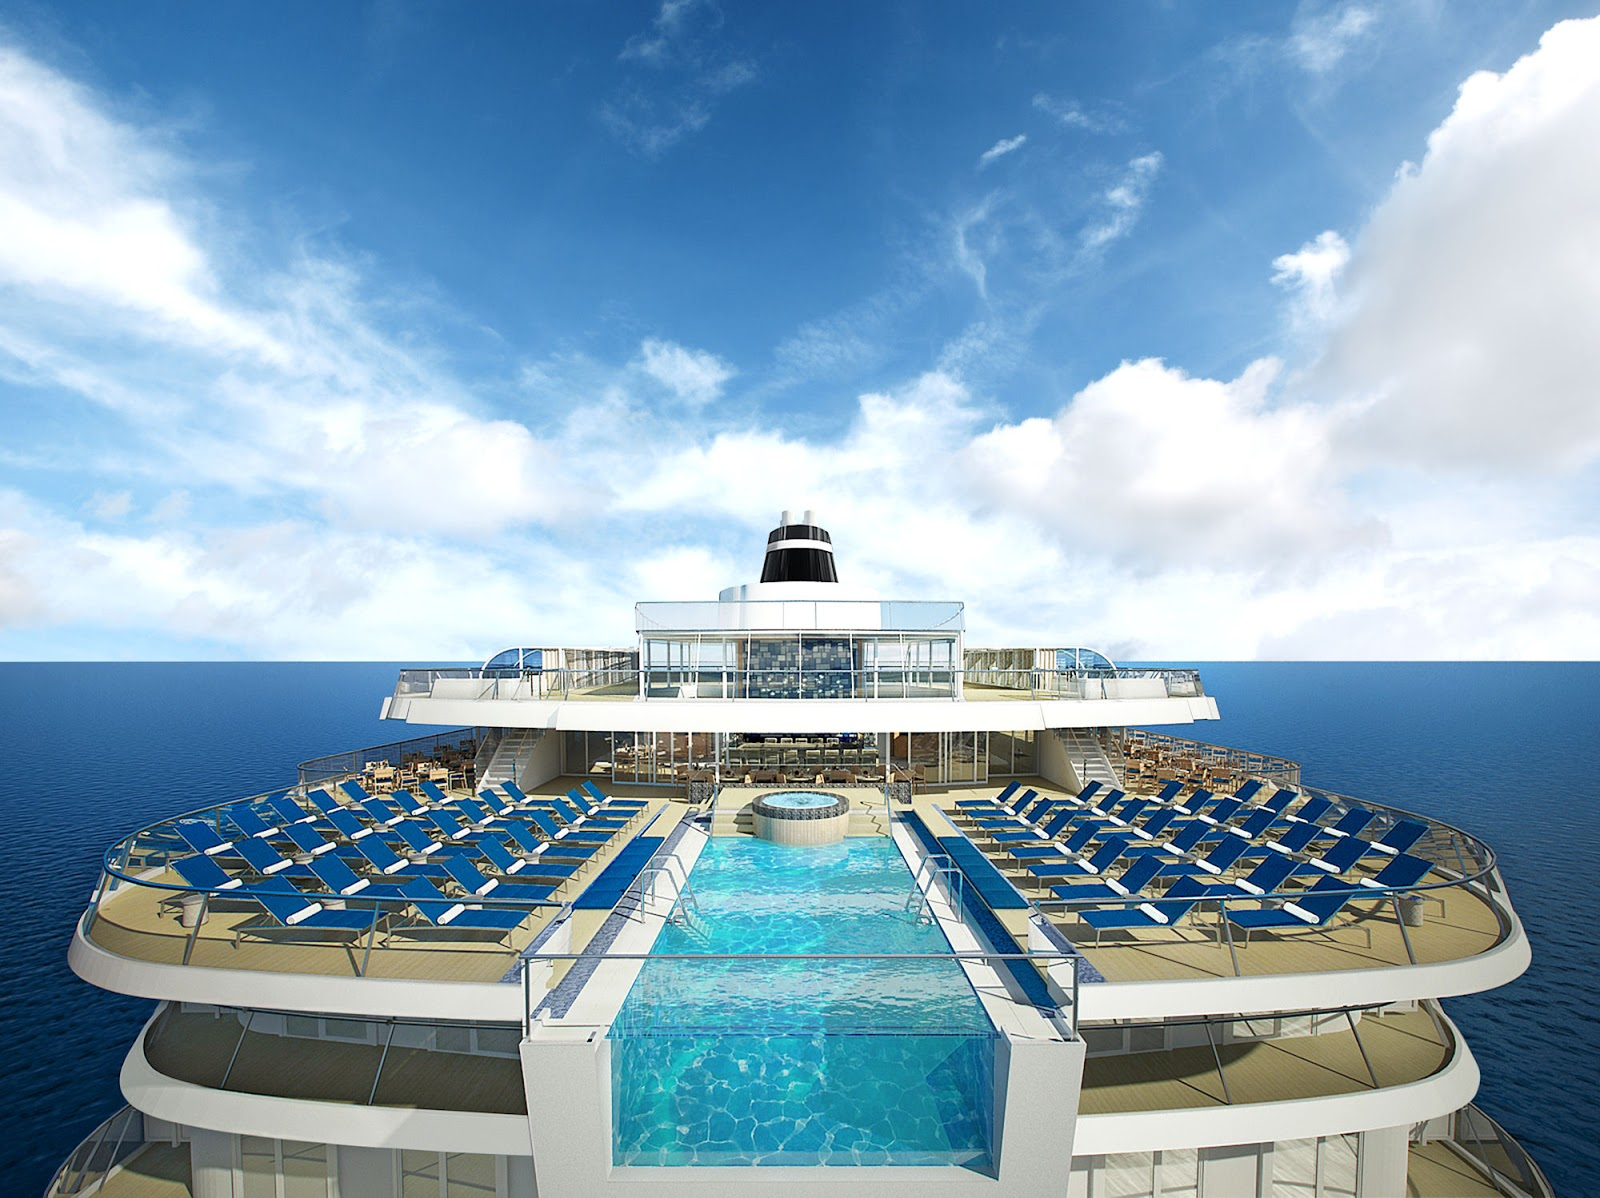 Viking Oceans Cruises will introduce the industry's first infinity pool adjacent to the Aquavit Terrace. Photo: ©Viking Cruises.